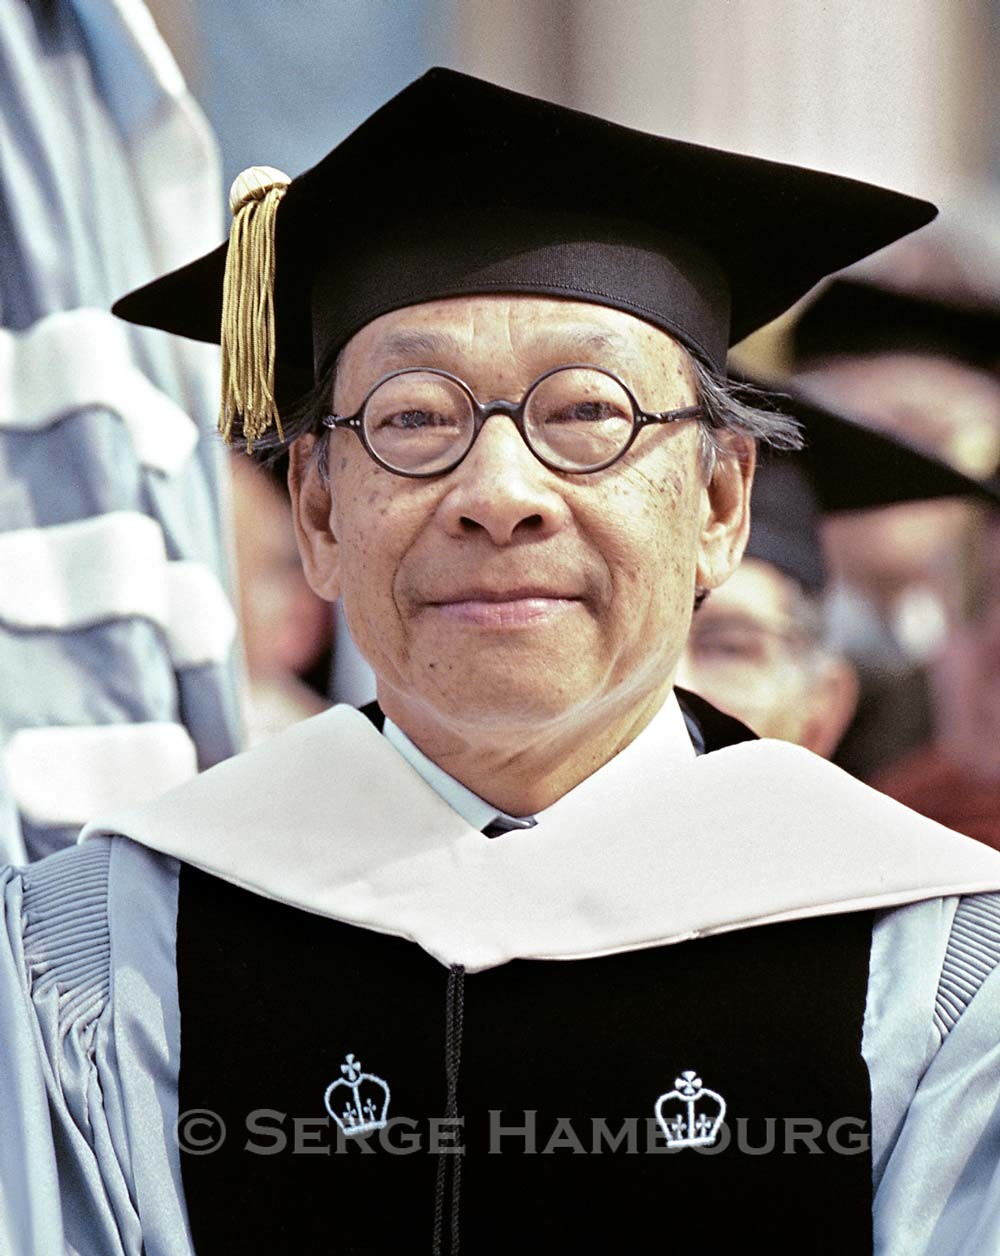 I.M. Pei, architecte - Dr. Honoris Causa, Columbia University May 14, 1980